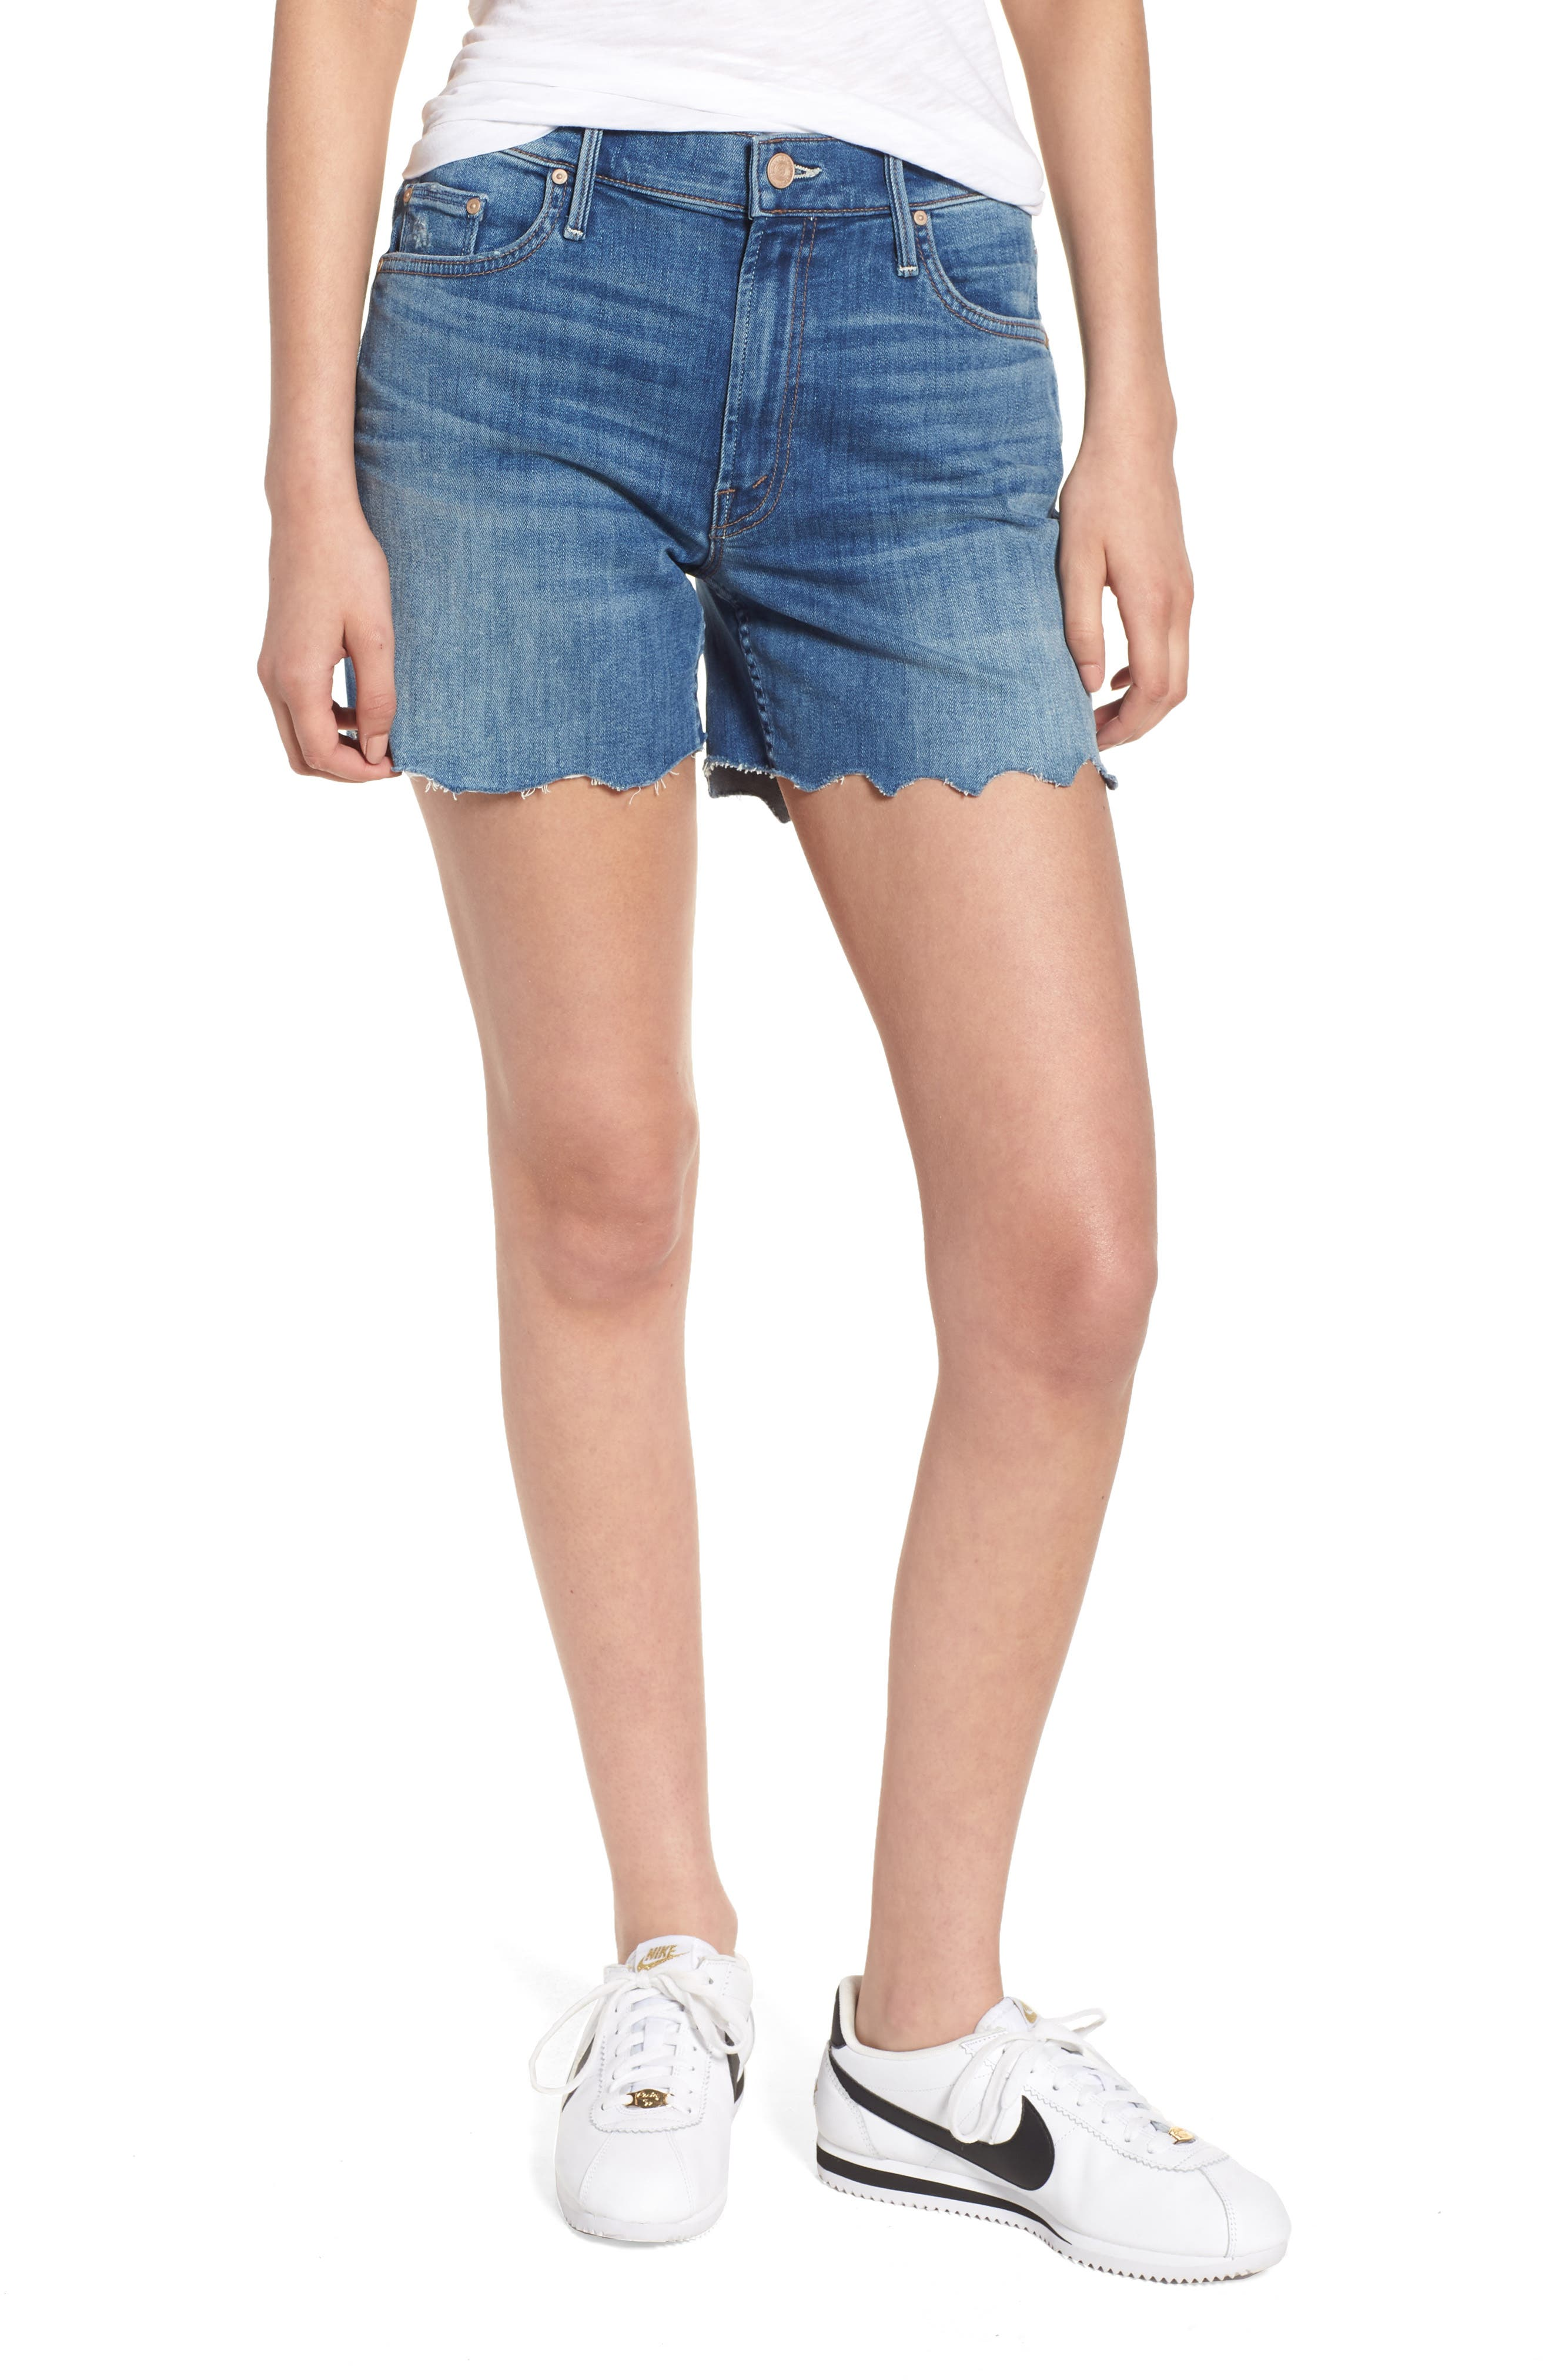 Alternate Image 1 Selected - MOTHER The Sinner Fray Denim Shorts (Mums the Word)